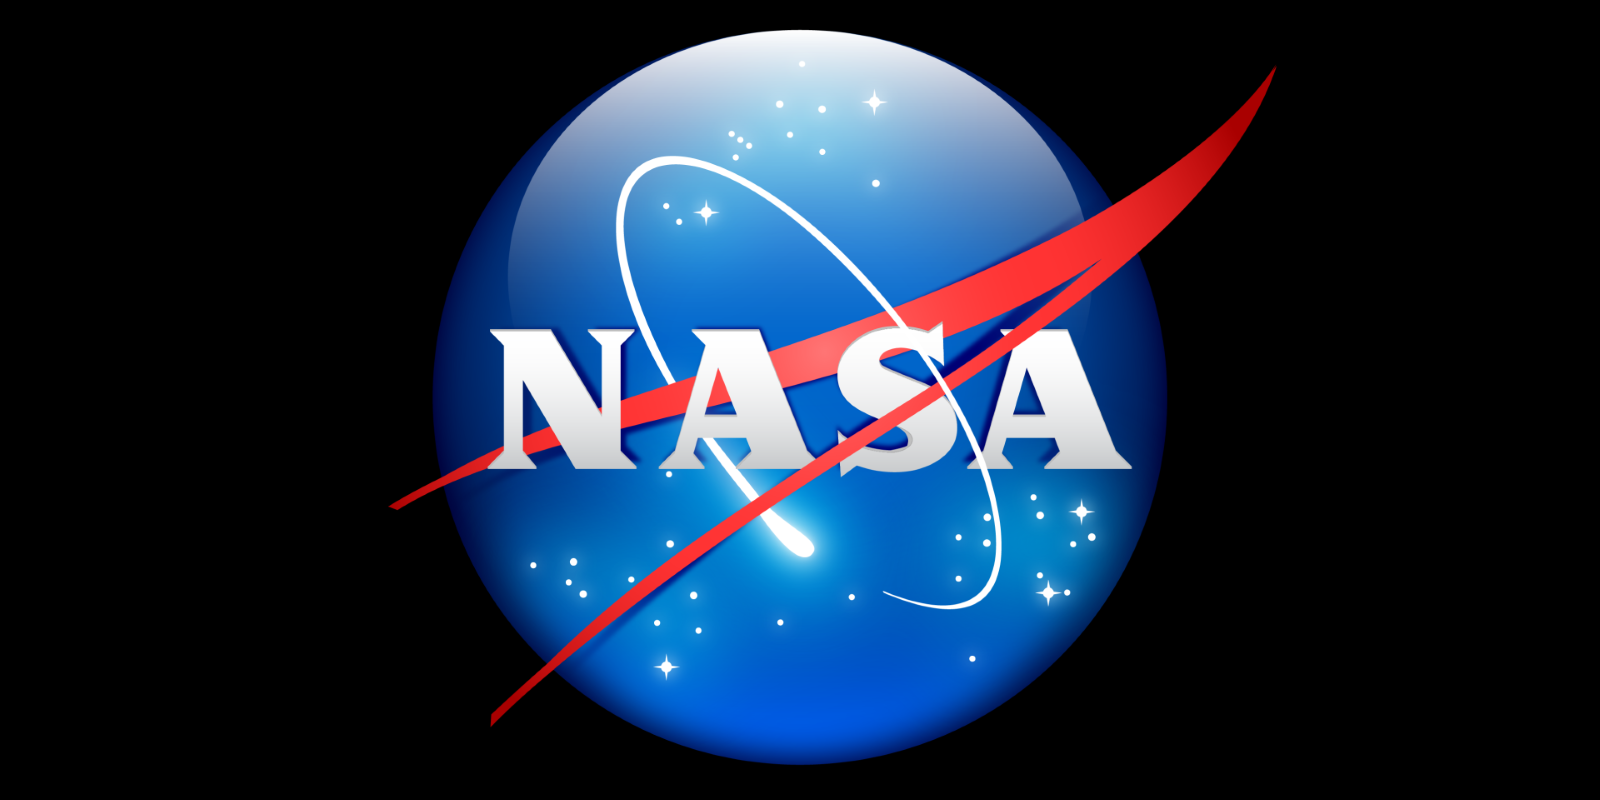 NASA 'meatball' insignia